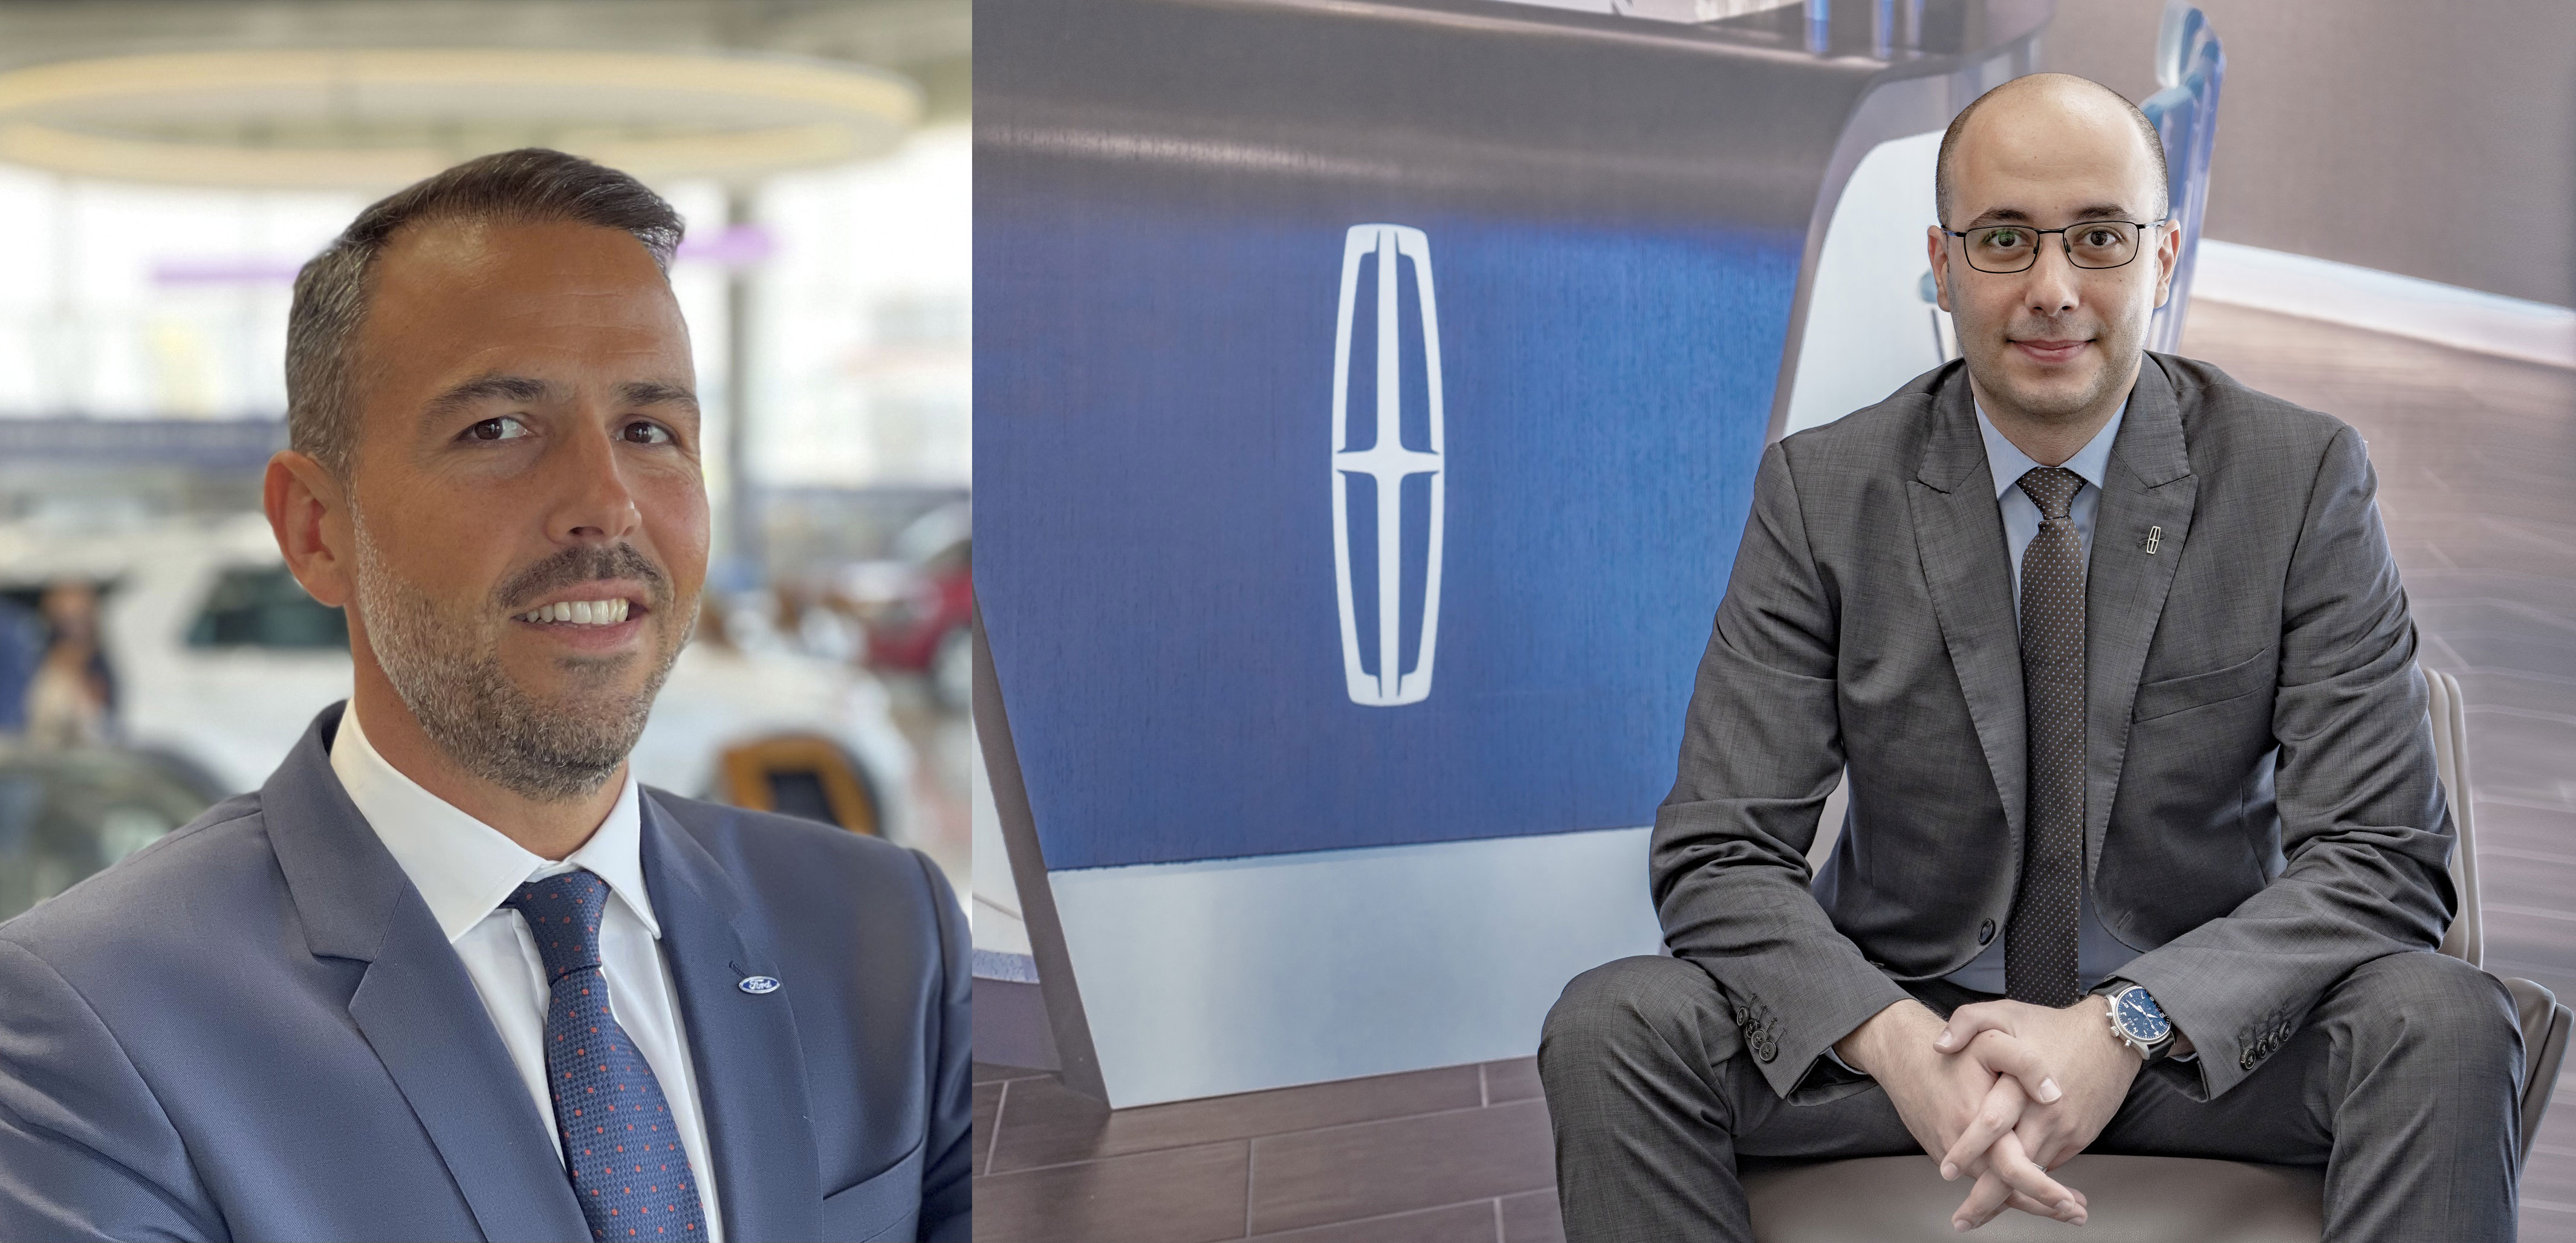 Ford Direct Markets Appoints New Middle East Leadership Team for Its Customer Service Division and Lincoln Operations